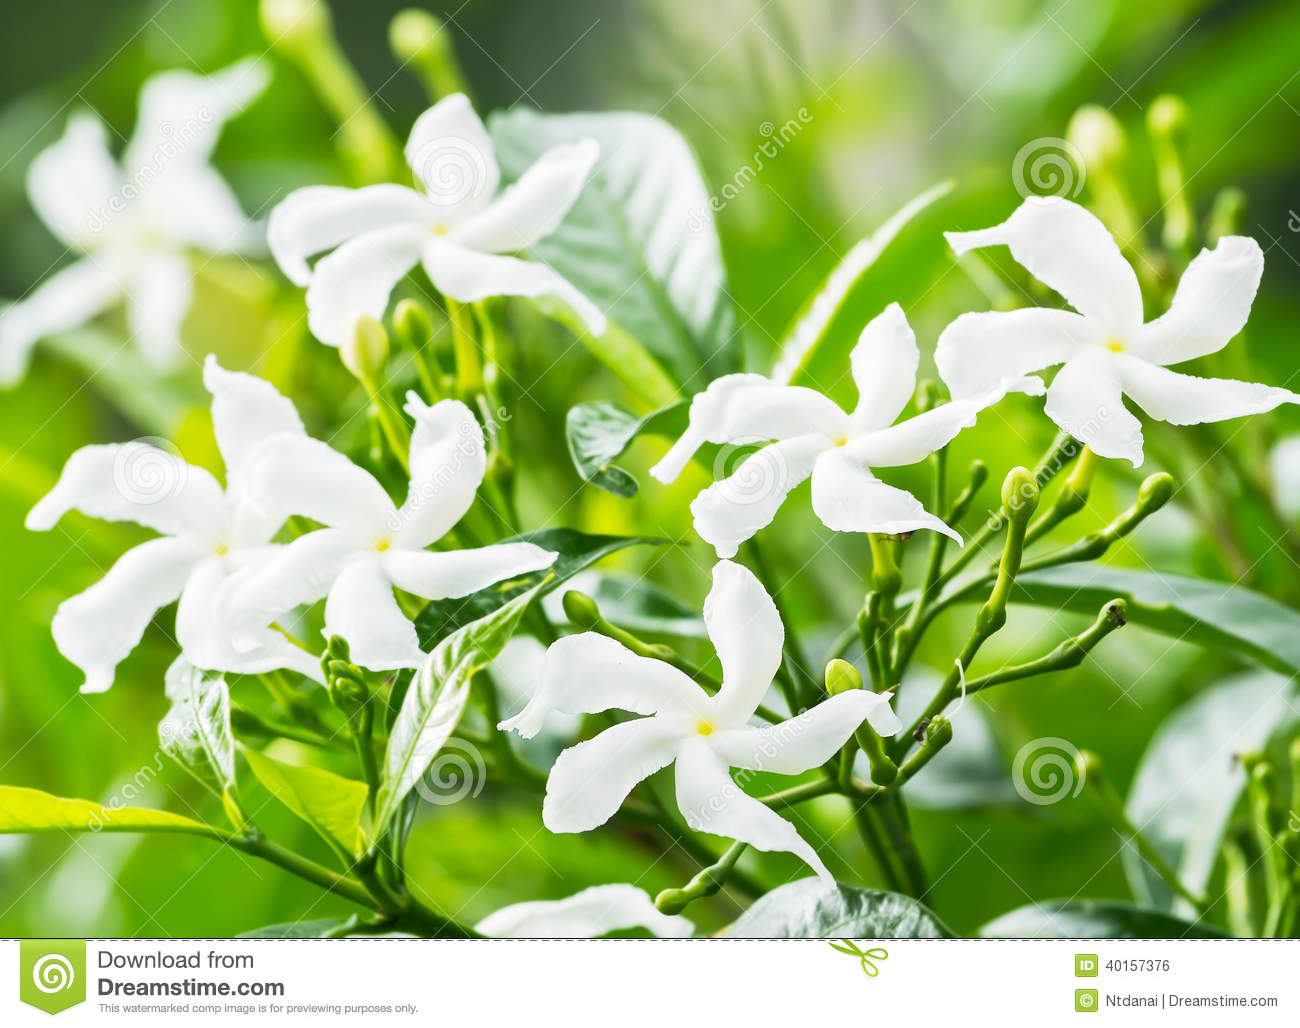 Sampaguita Flower Stock Photos, Images, & Pictures - 105 Images